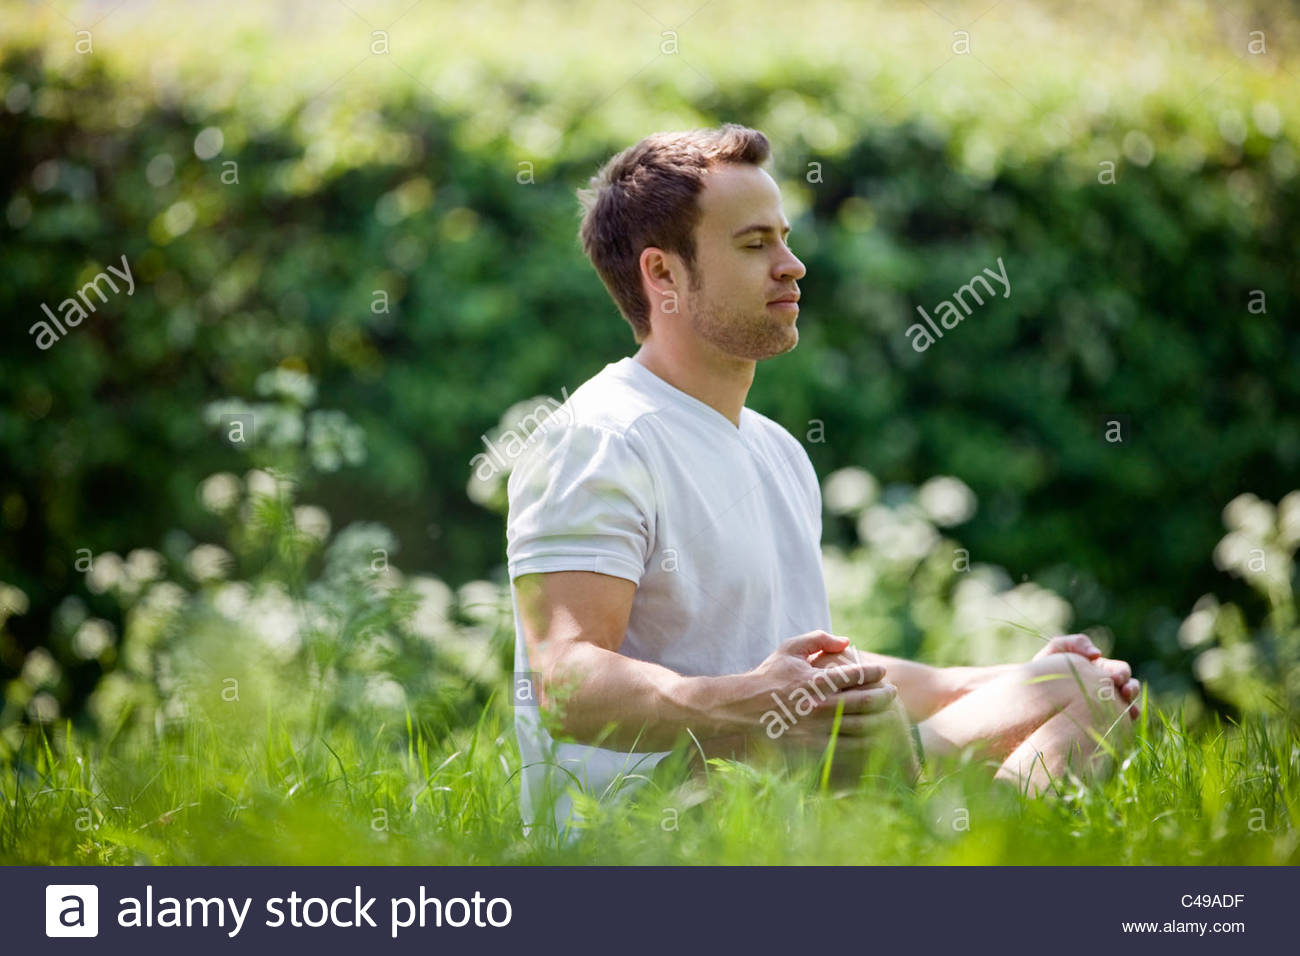 A young man meditating outdoors - Stock Image